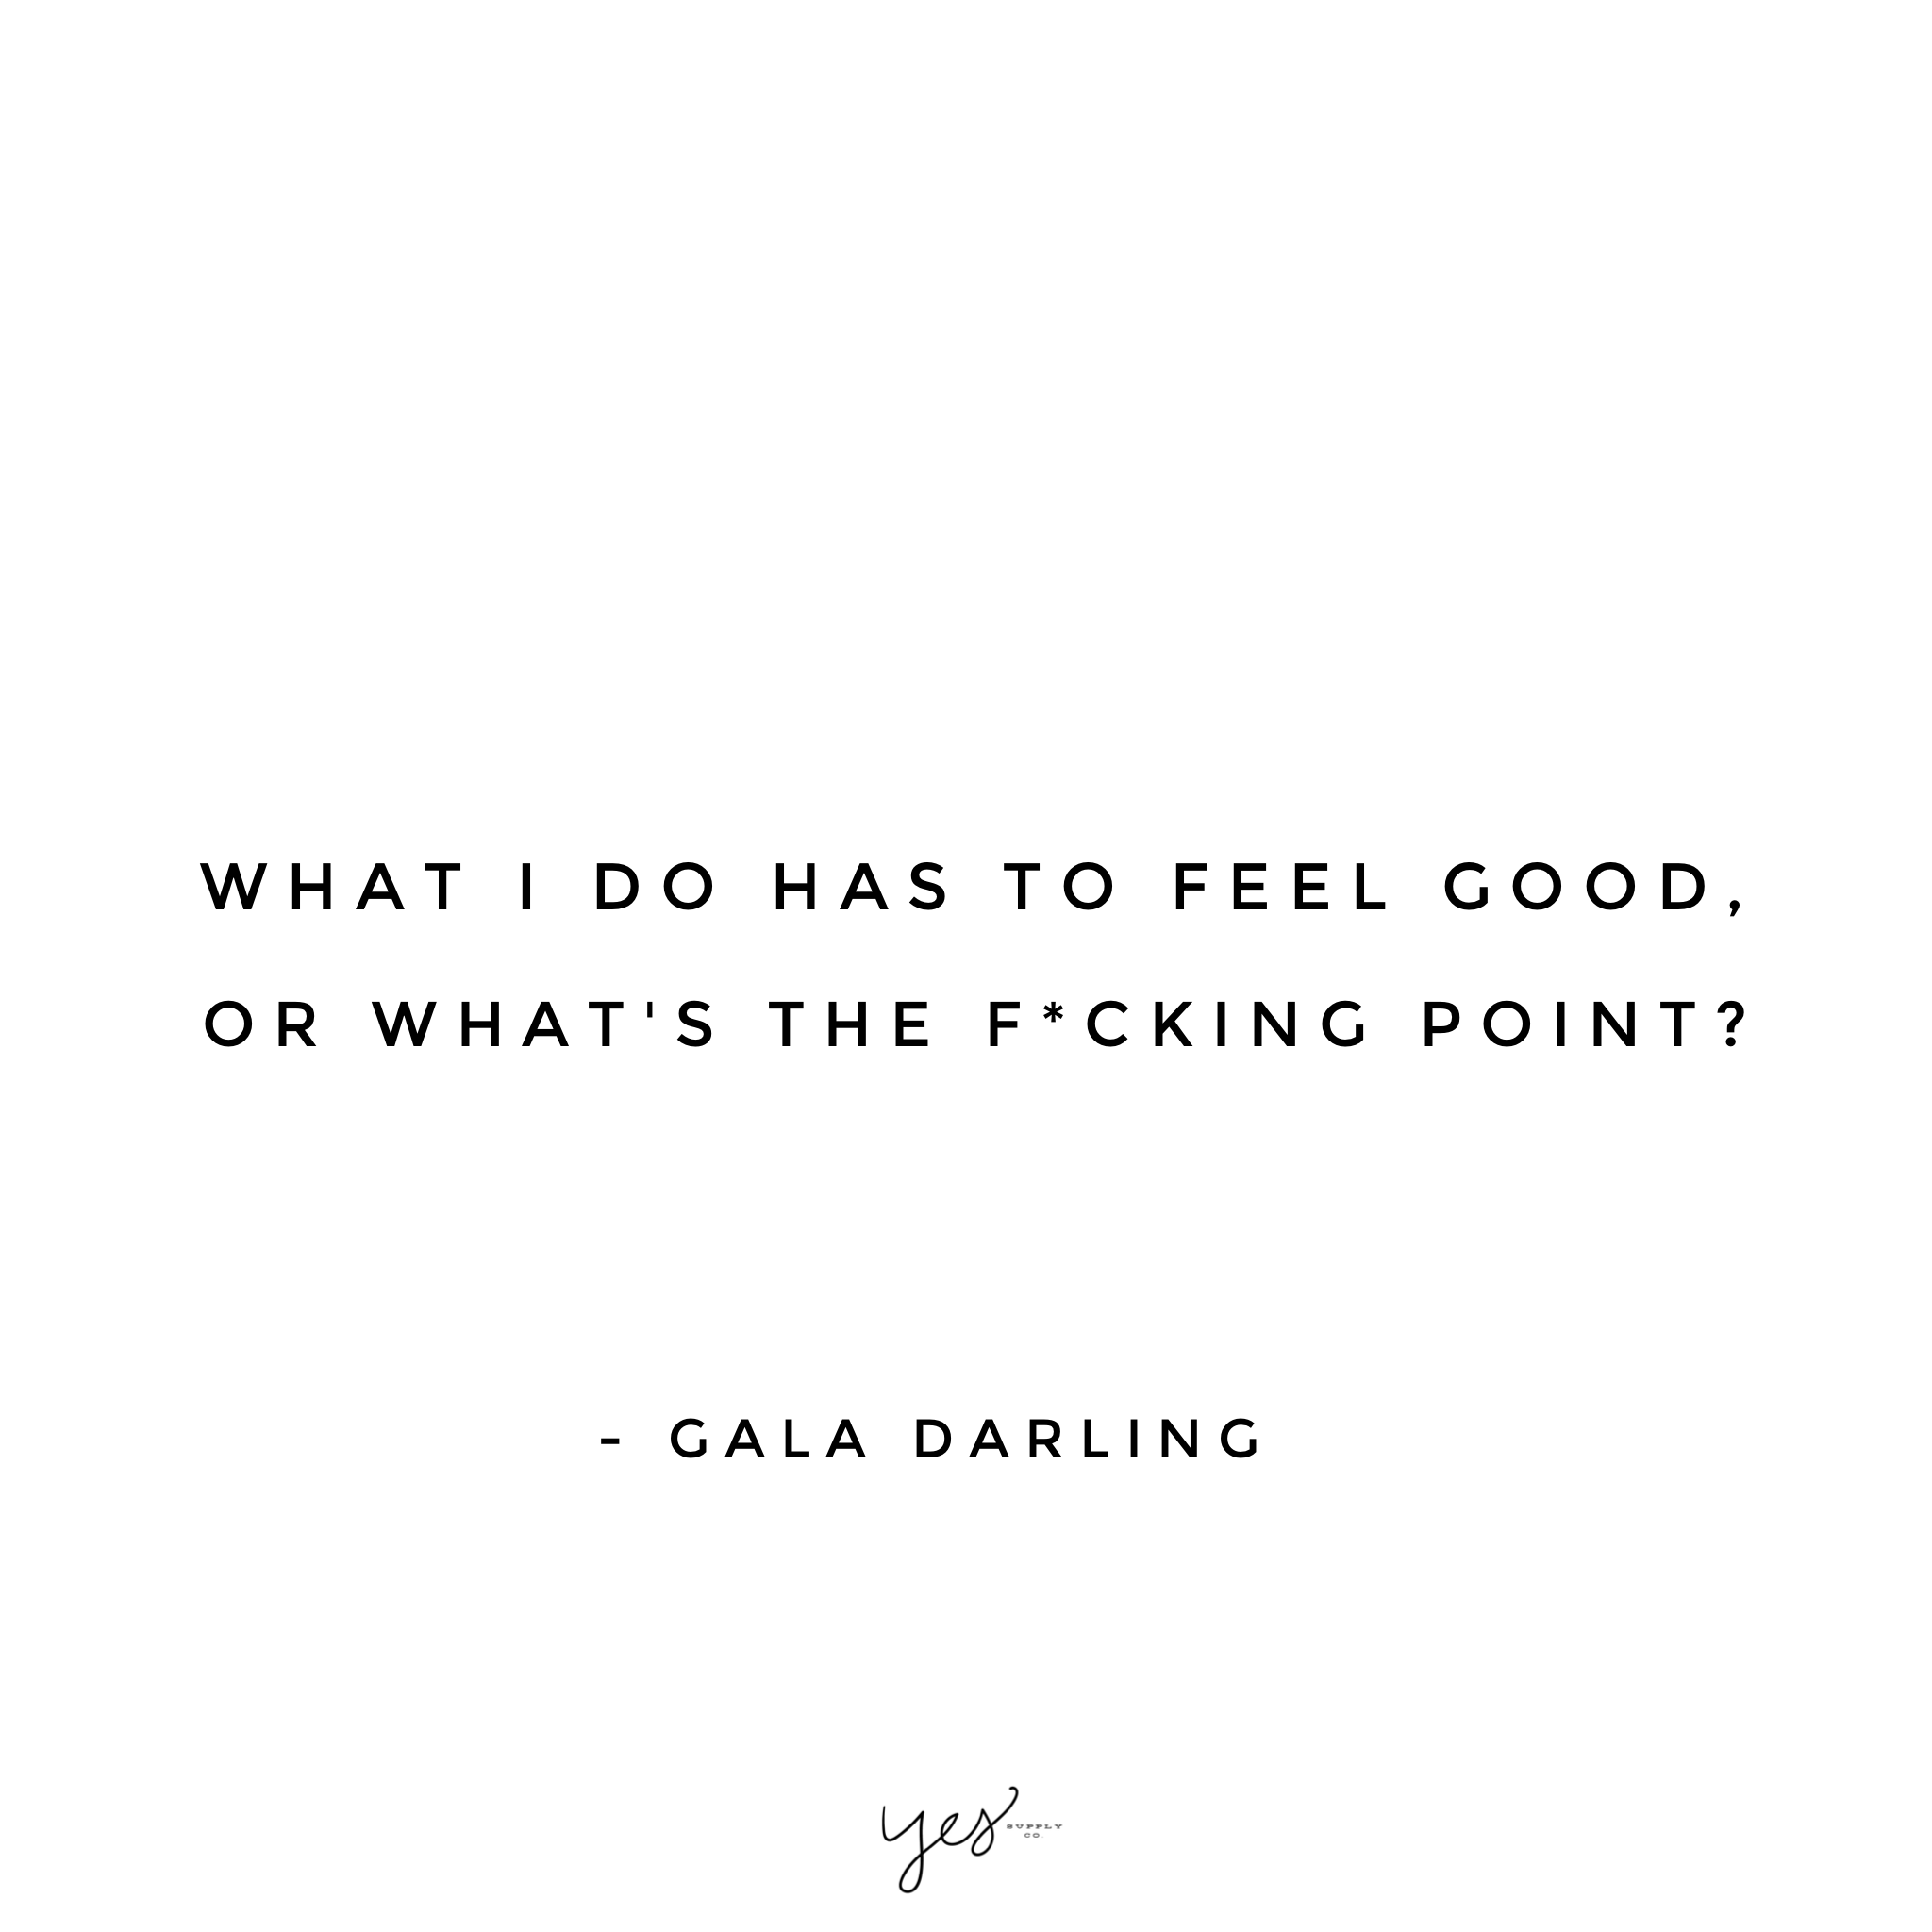 What I do has feel good, or what's the fucking point. For more inspiration, quotes and tips on self-love and business for girlbosses and female creatives check out yessupply.co.